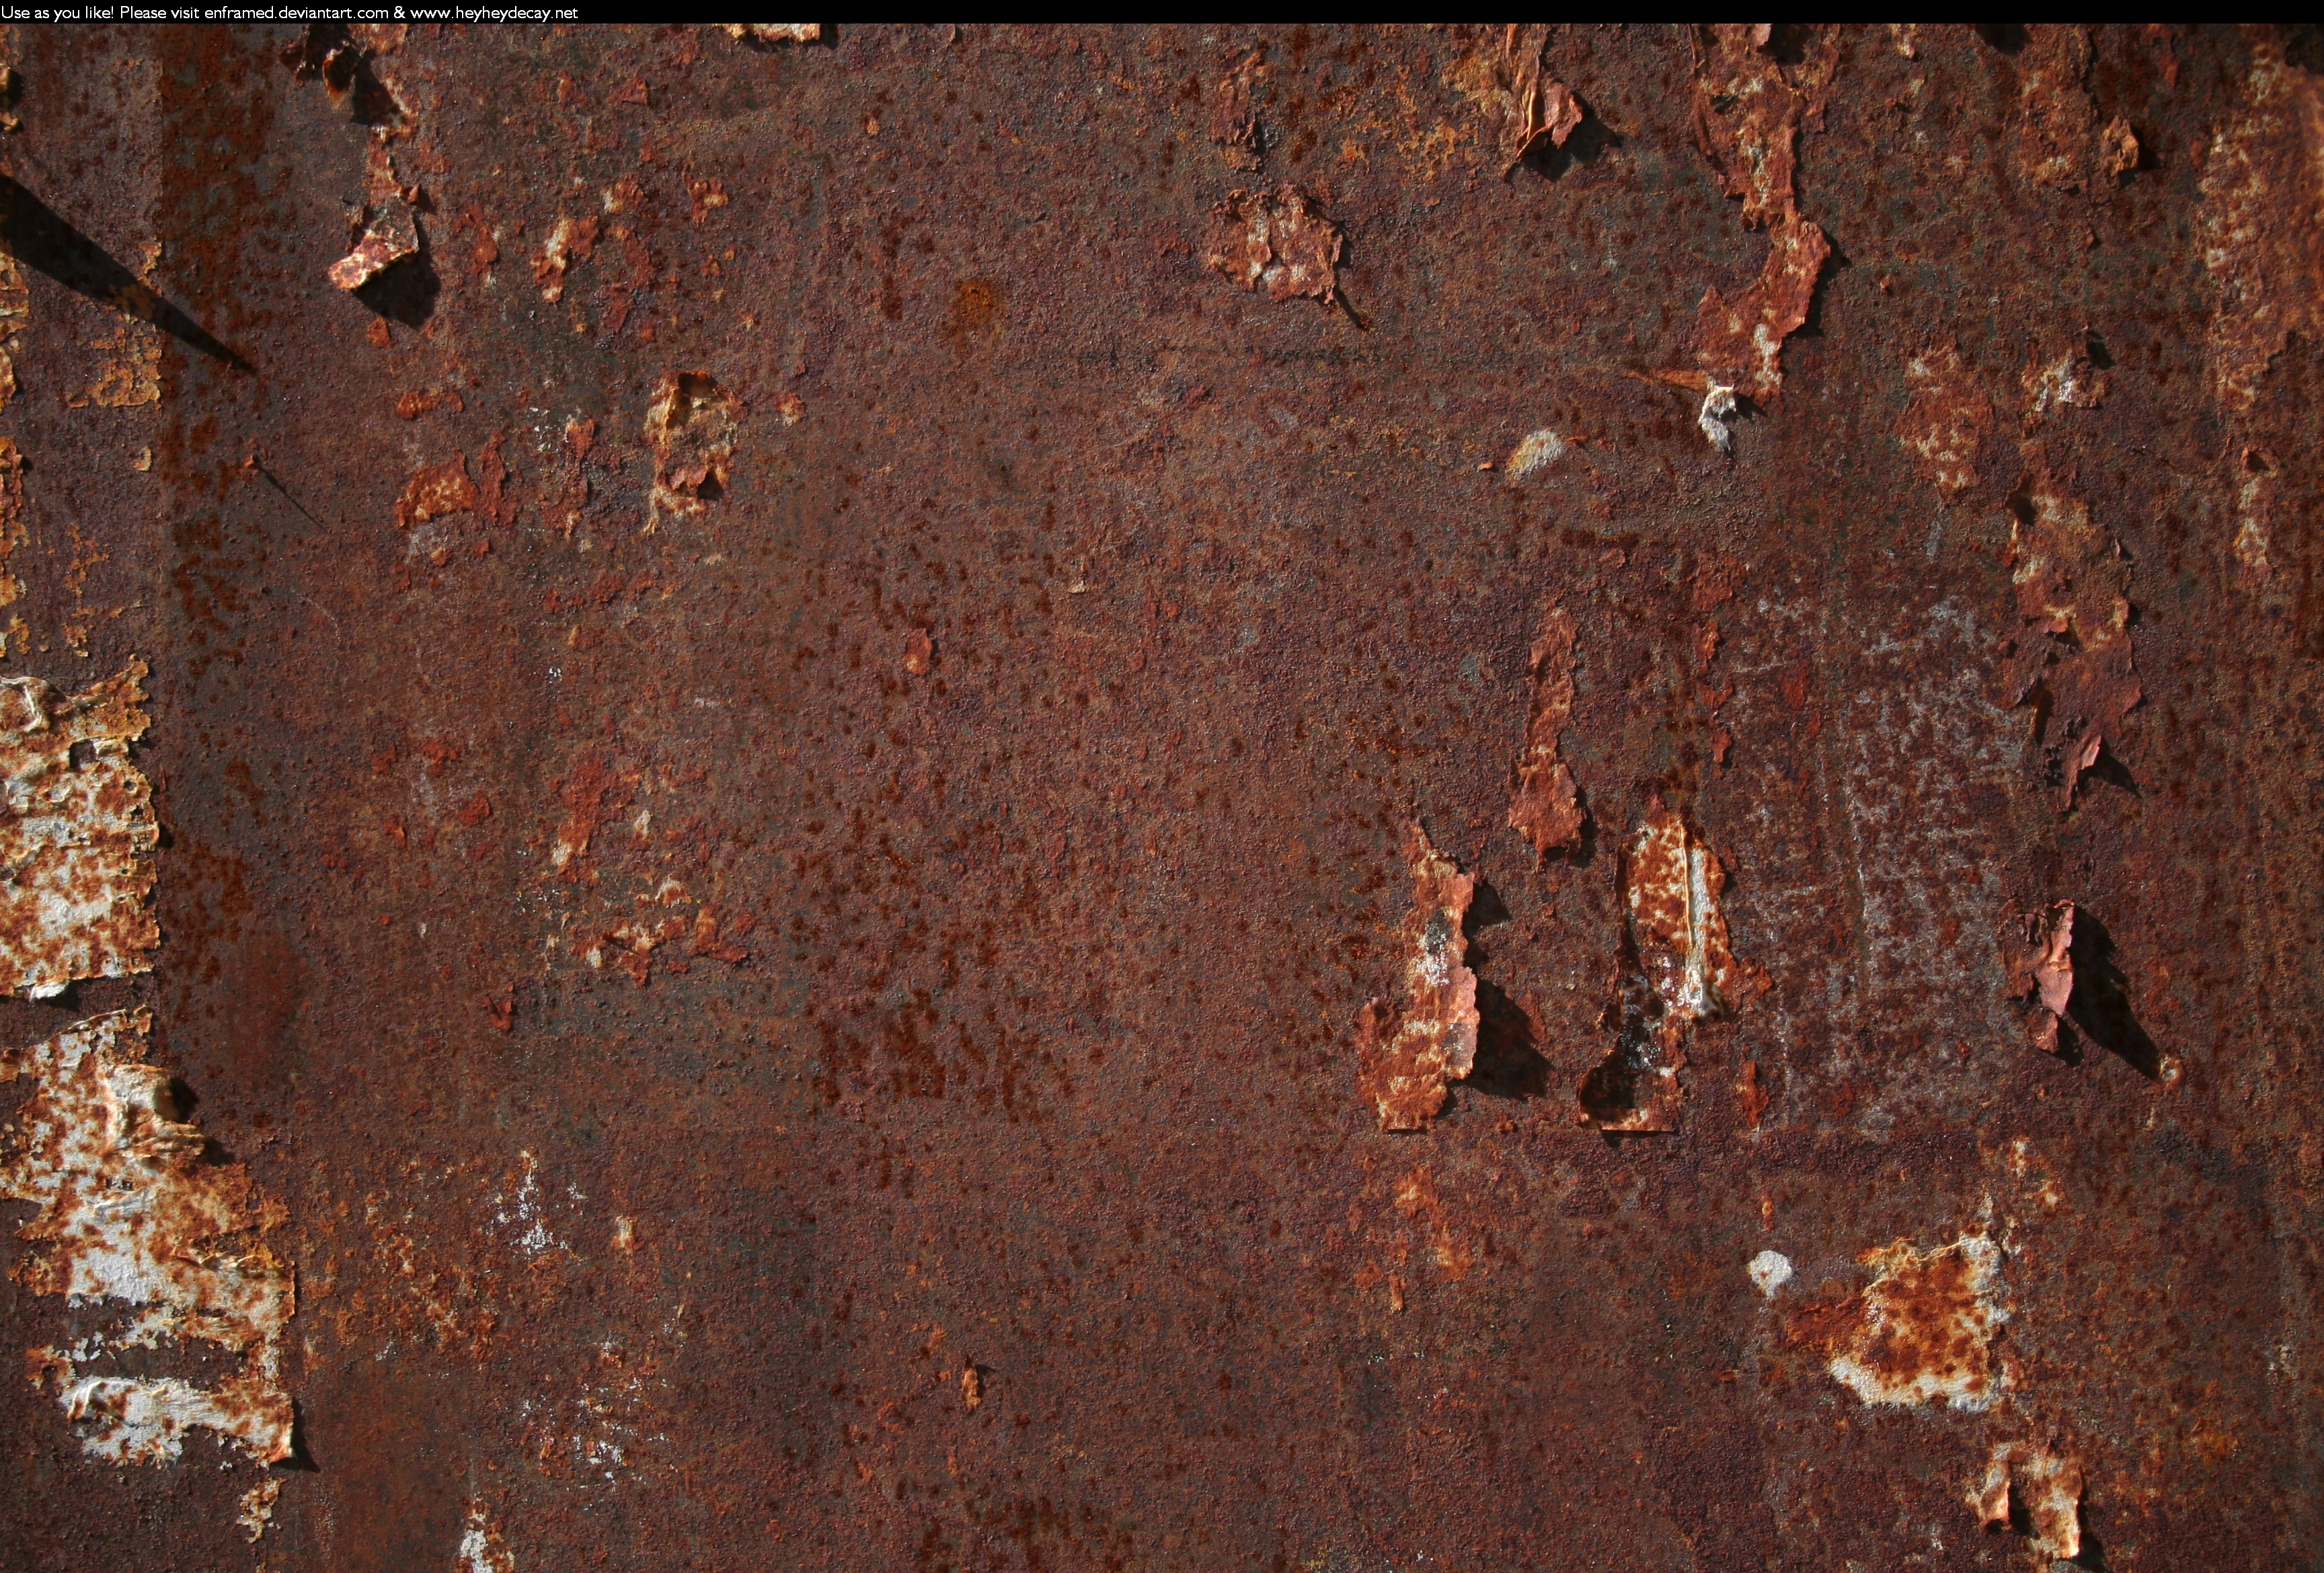 Rust Background Brown rust texture 2 by 3456x2339